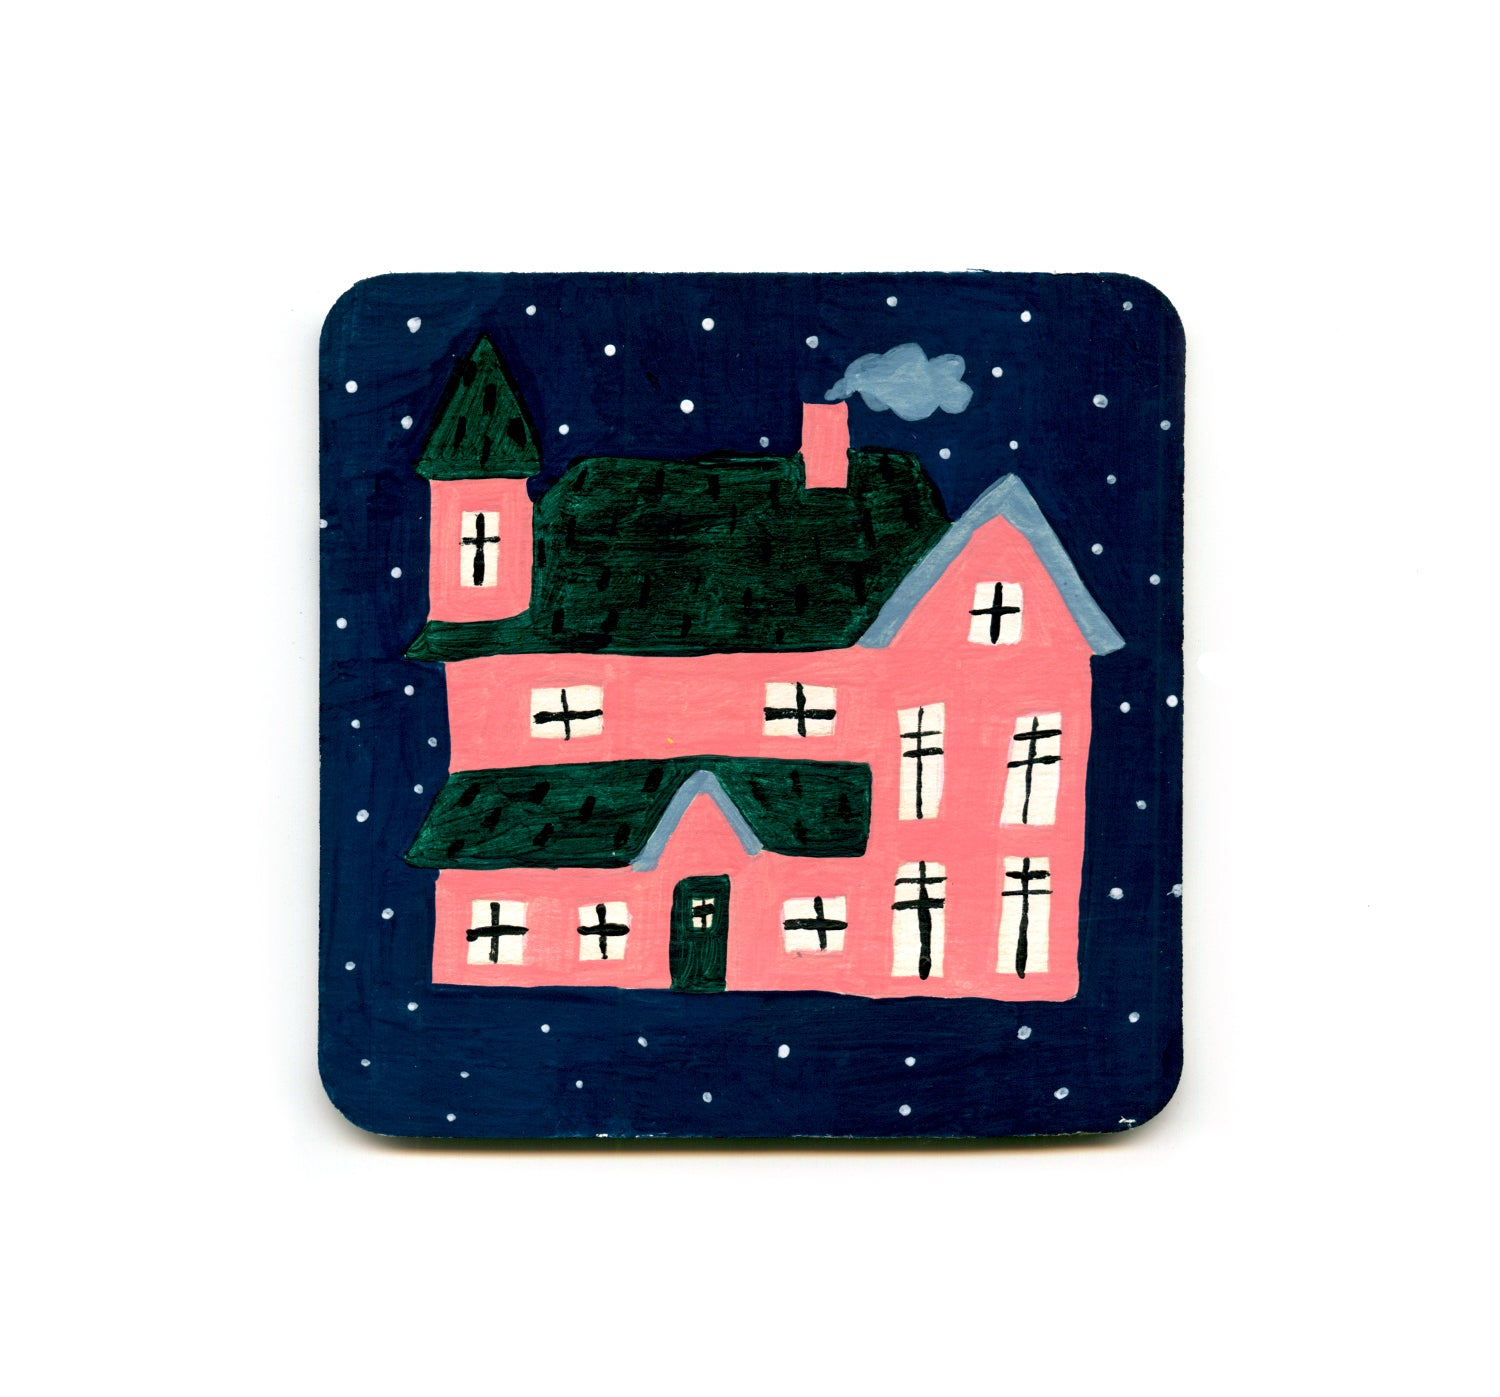 Jennifer Bouron - The House Coaster